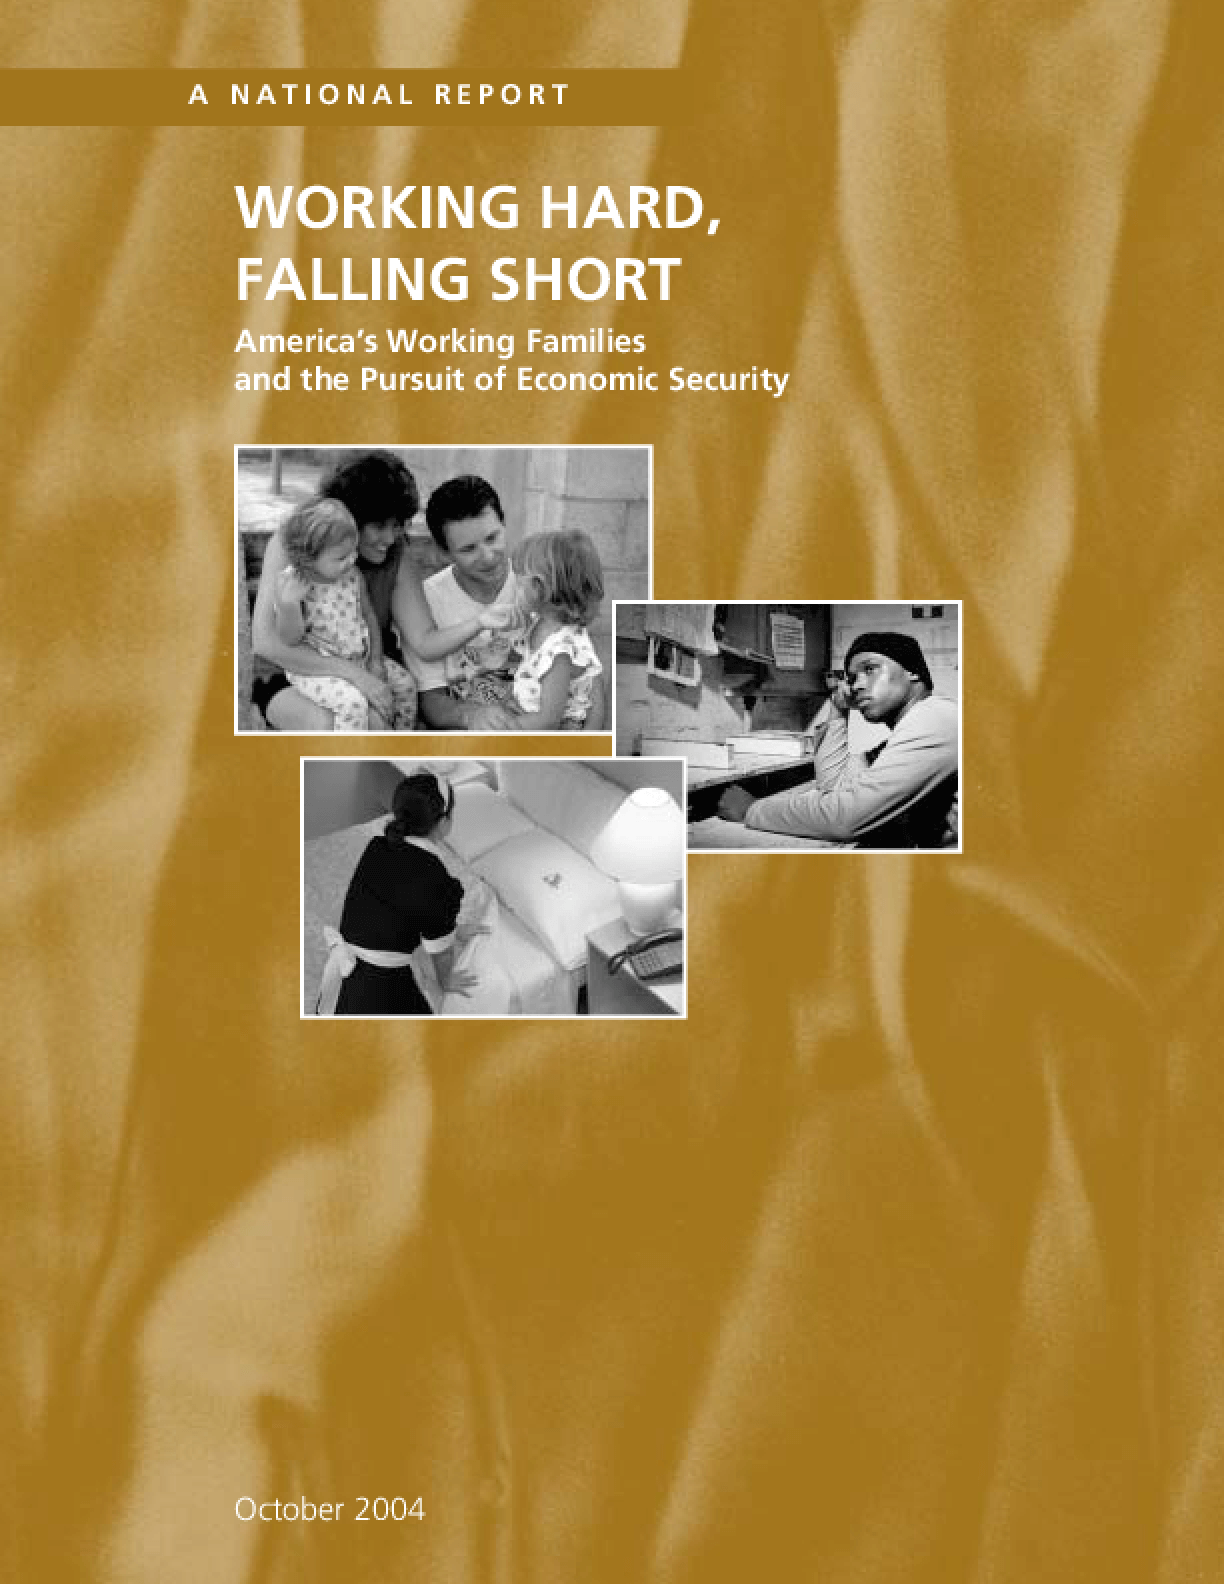 Working Hard, Falling Short: America's Working Families and the Pursuit of Economic Security